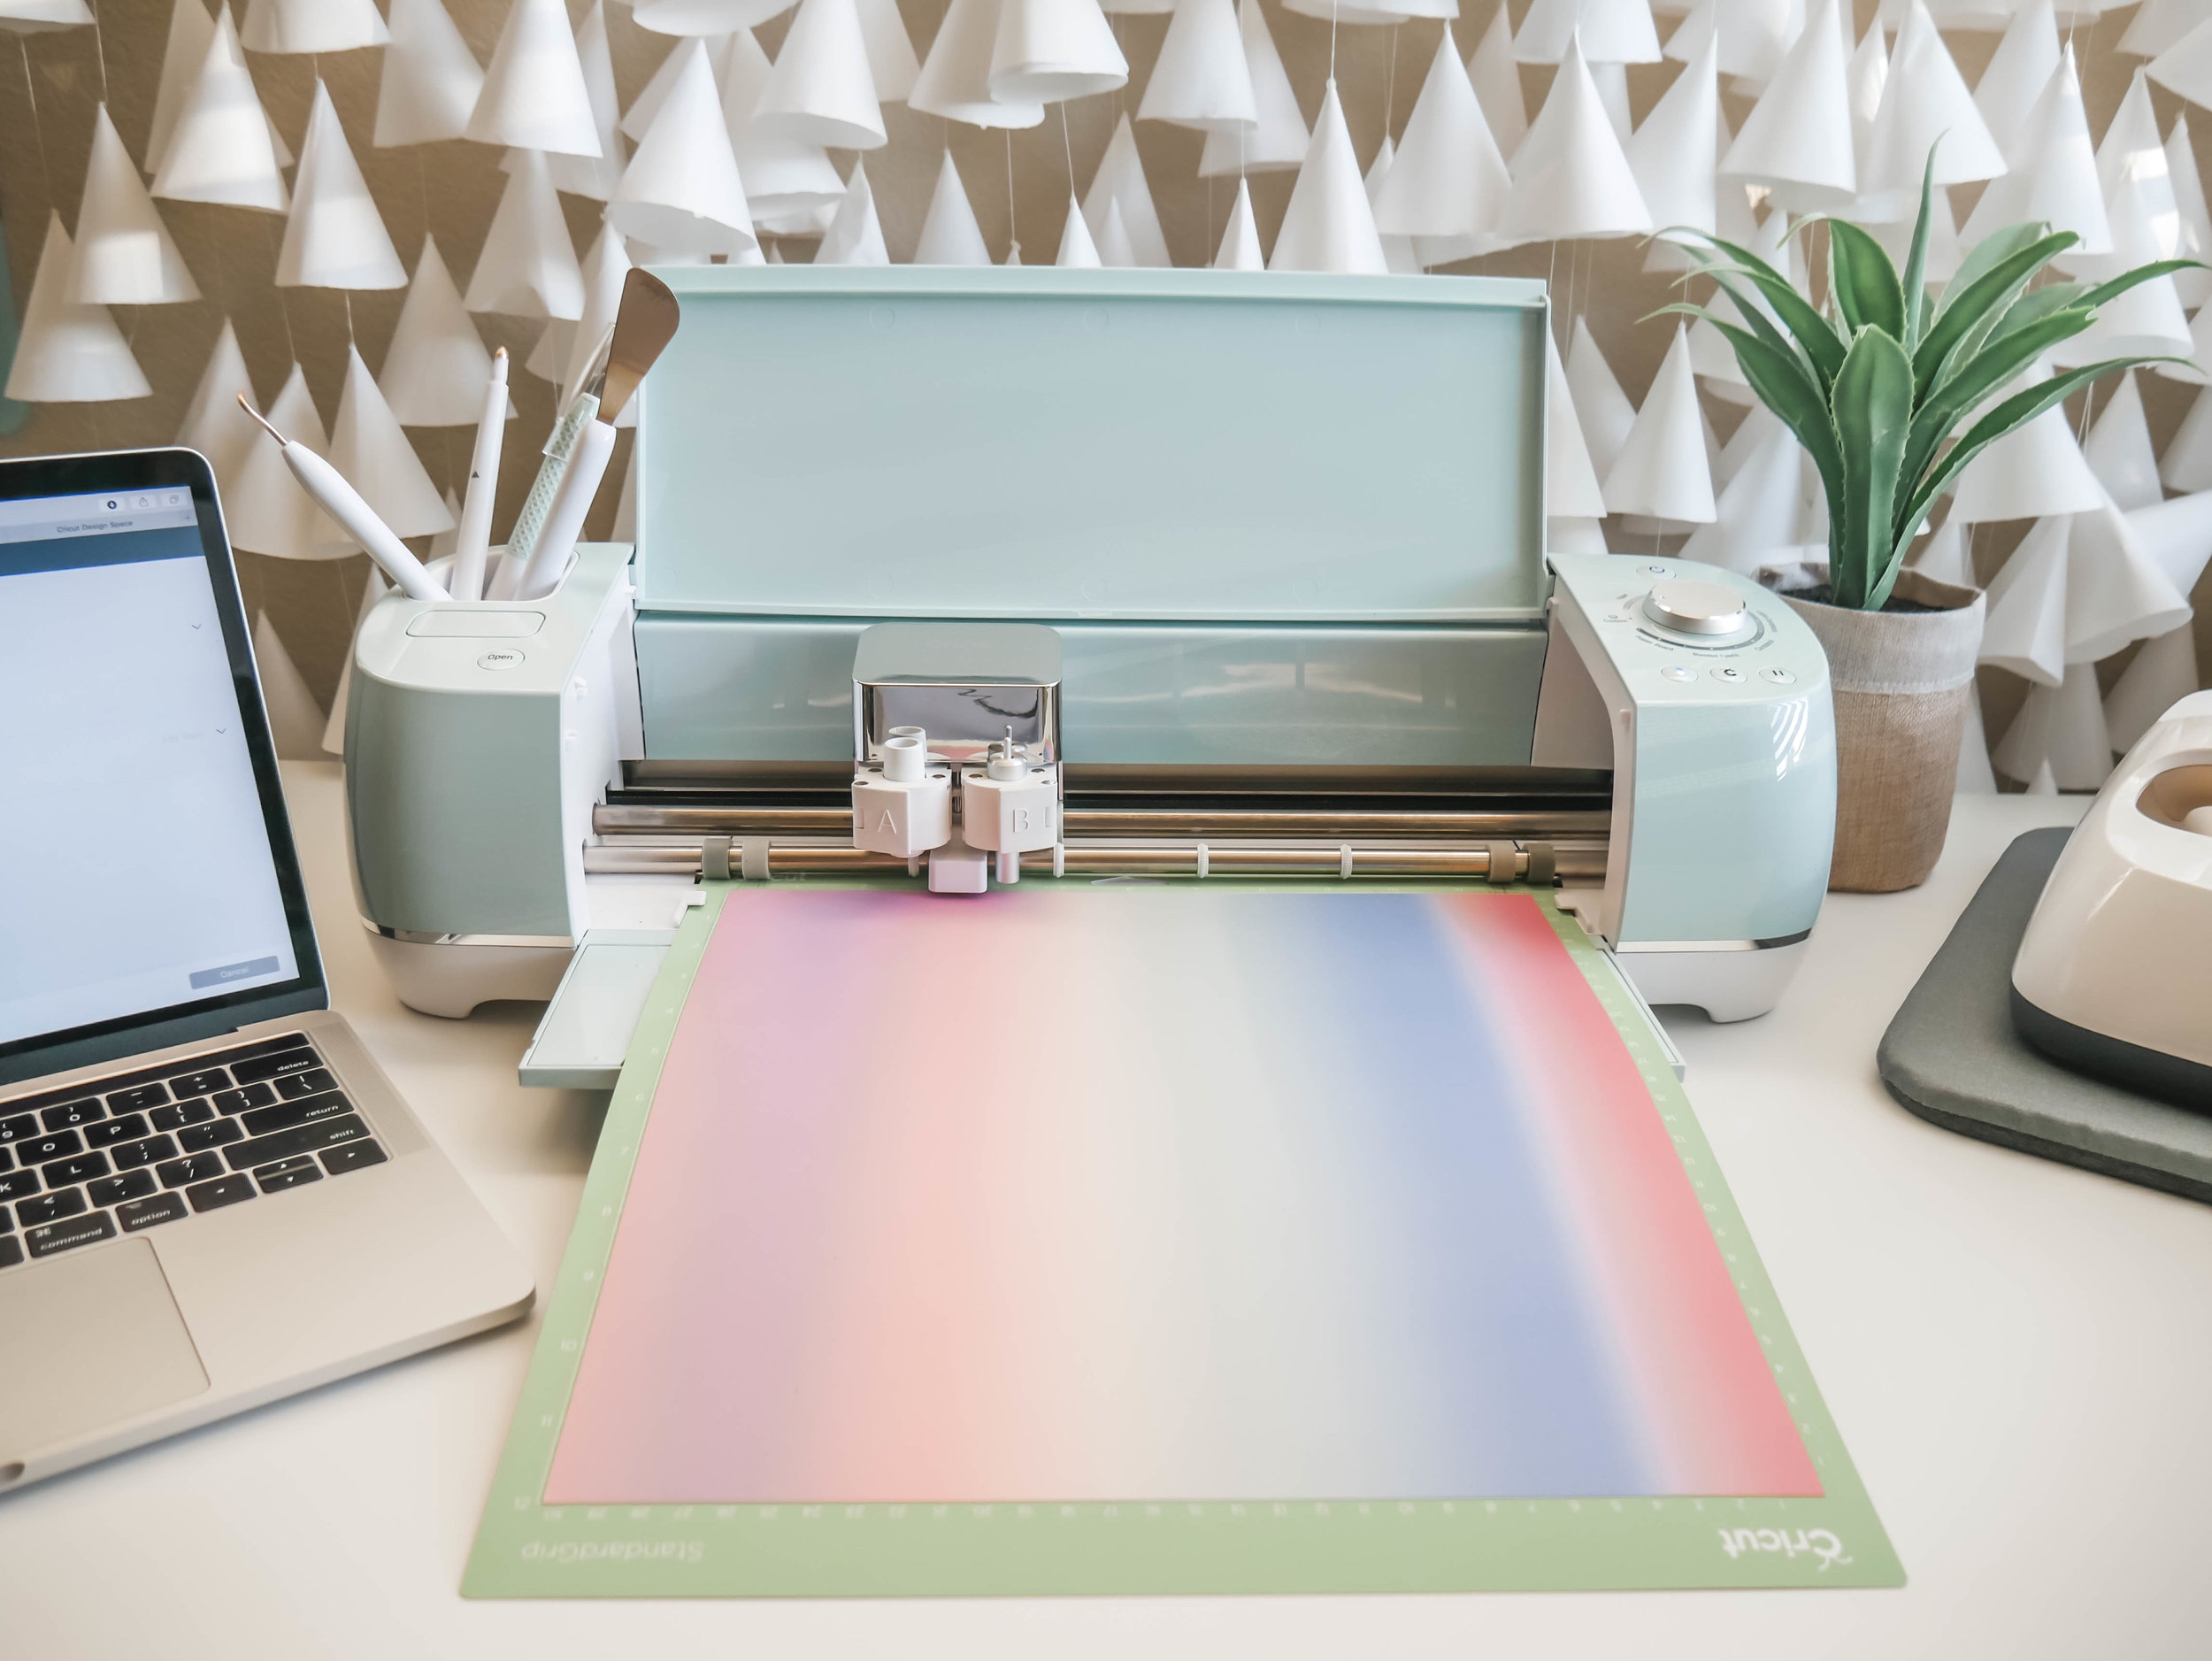 DIY ideas for the NEW Cricut Infusible Ink available at Michaels- DIY, Parties and more from Mint Event Design, How to use Cricut's Infusible Ink available at Michaels, Cricut DIY, Cricut Infusible Ink DIY and How to, step by step infusible Ink DIY